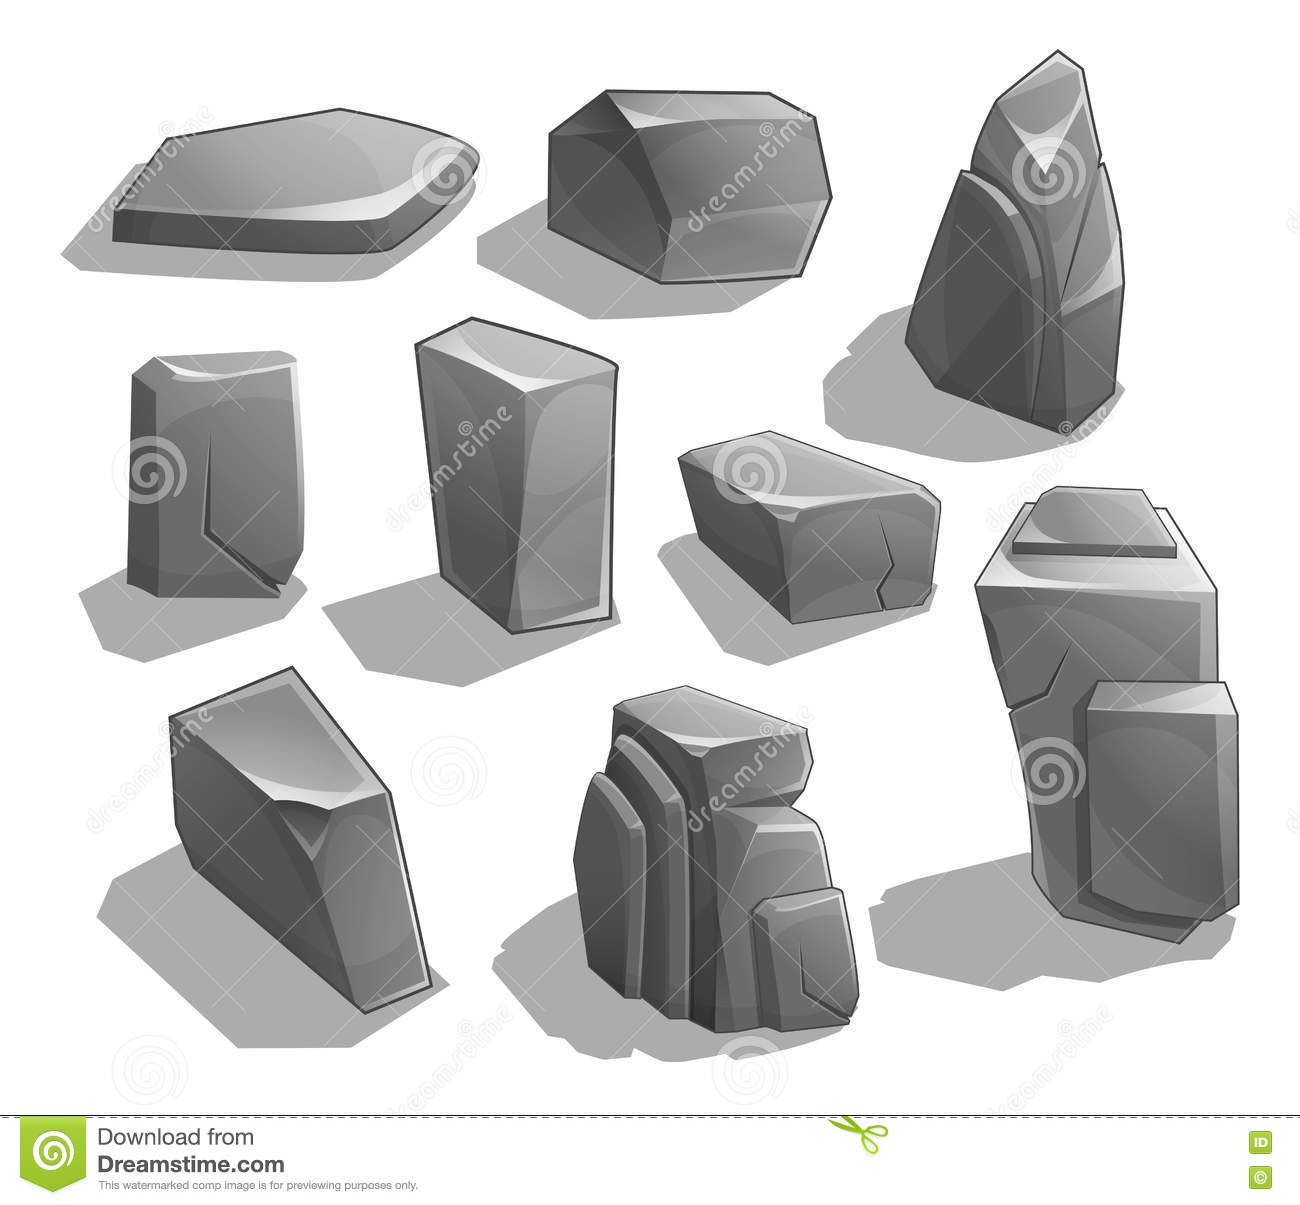 Rocks and stones. Cartoon Stones and rocks in isometric style. Set of different boulders.